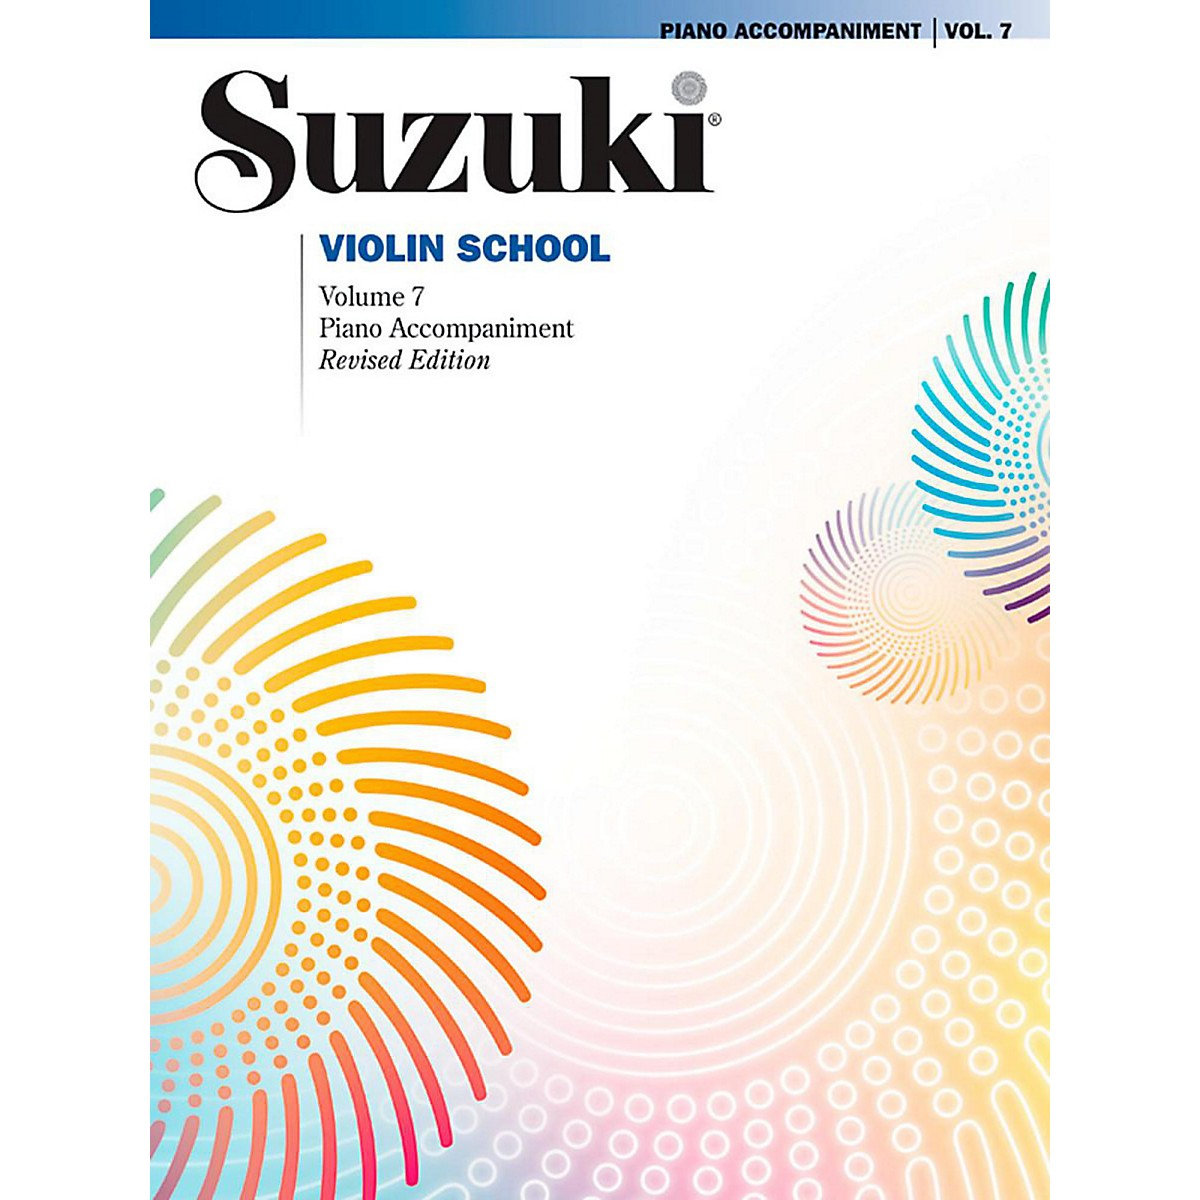 Suzuki Suzuki Violin School Piano Acc. Volume 7 Book